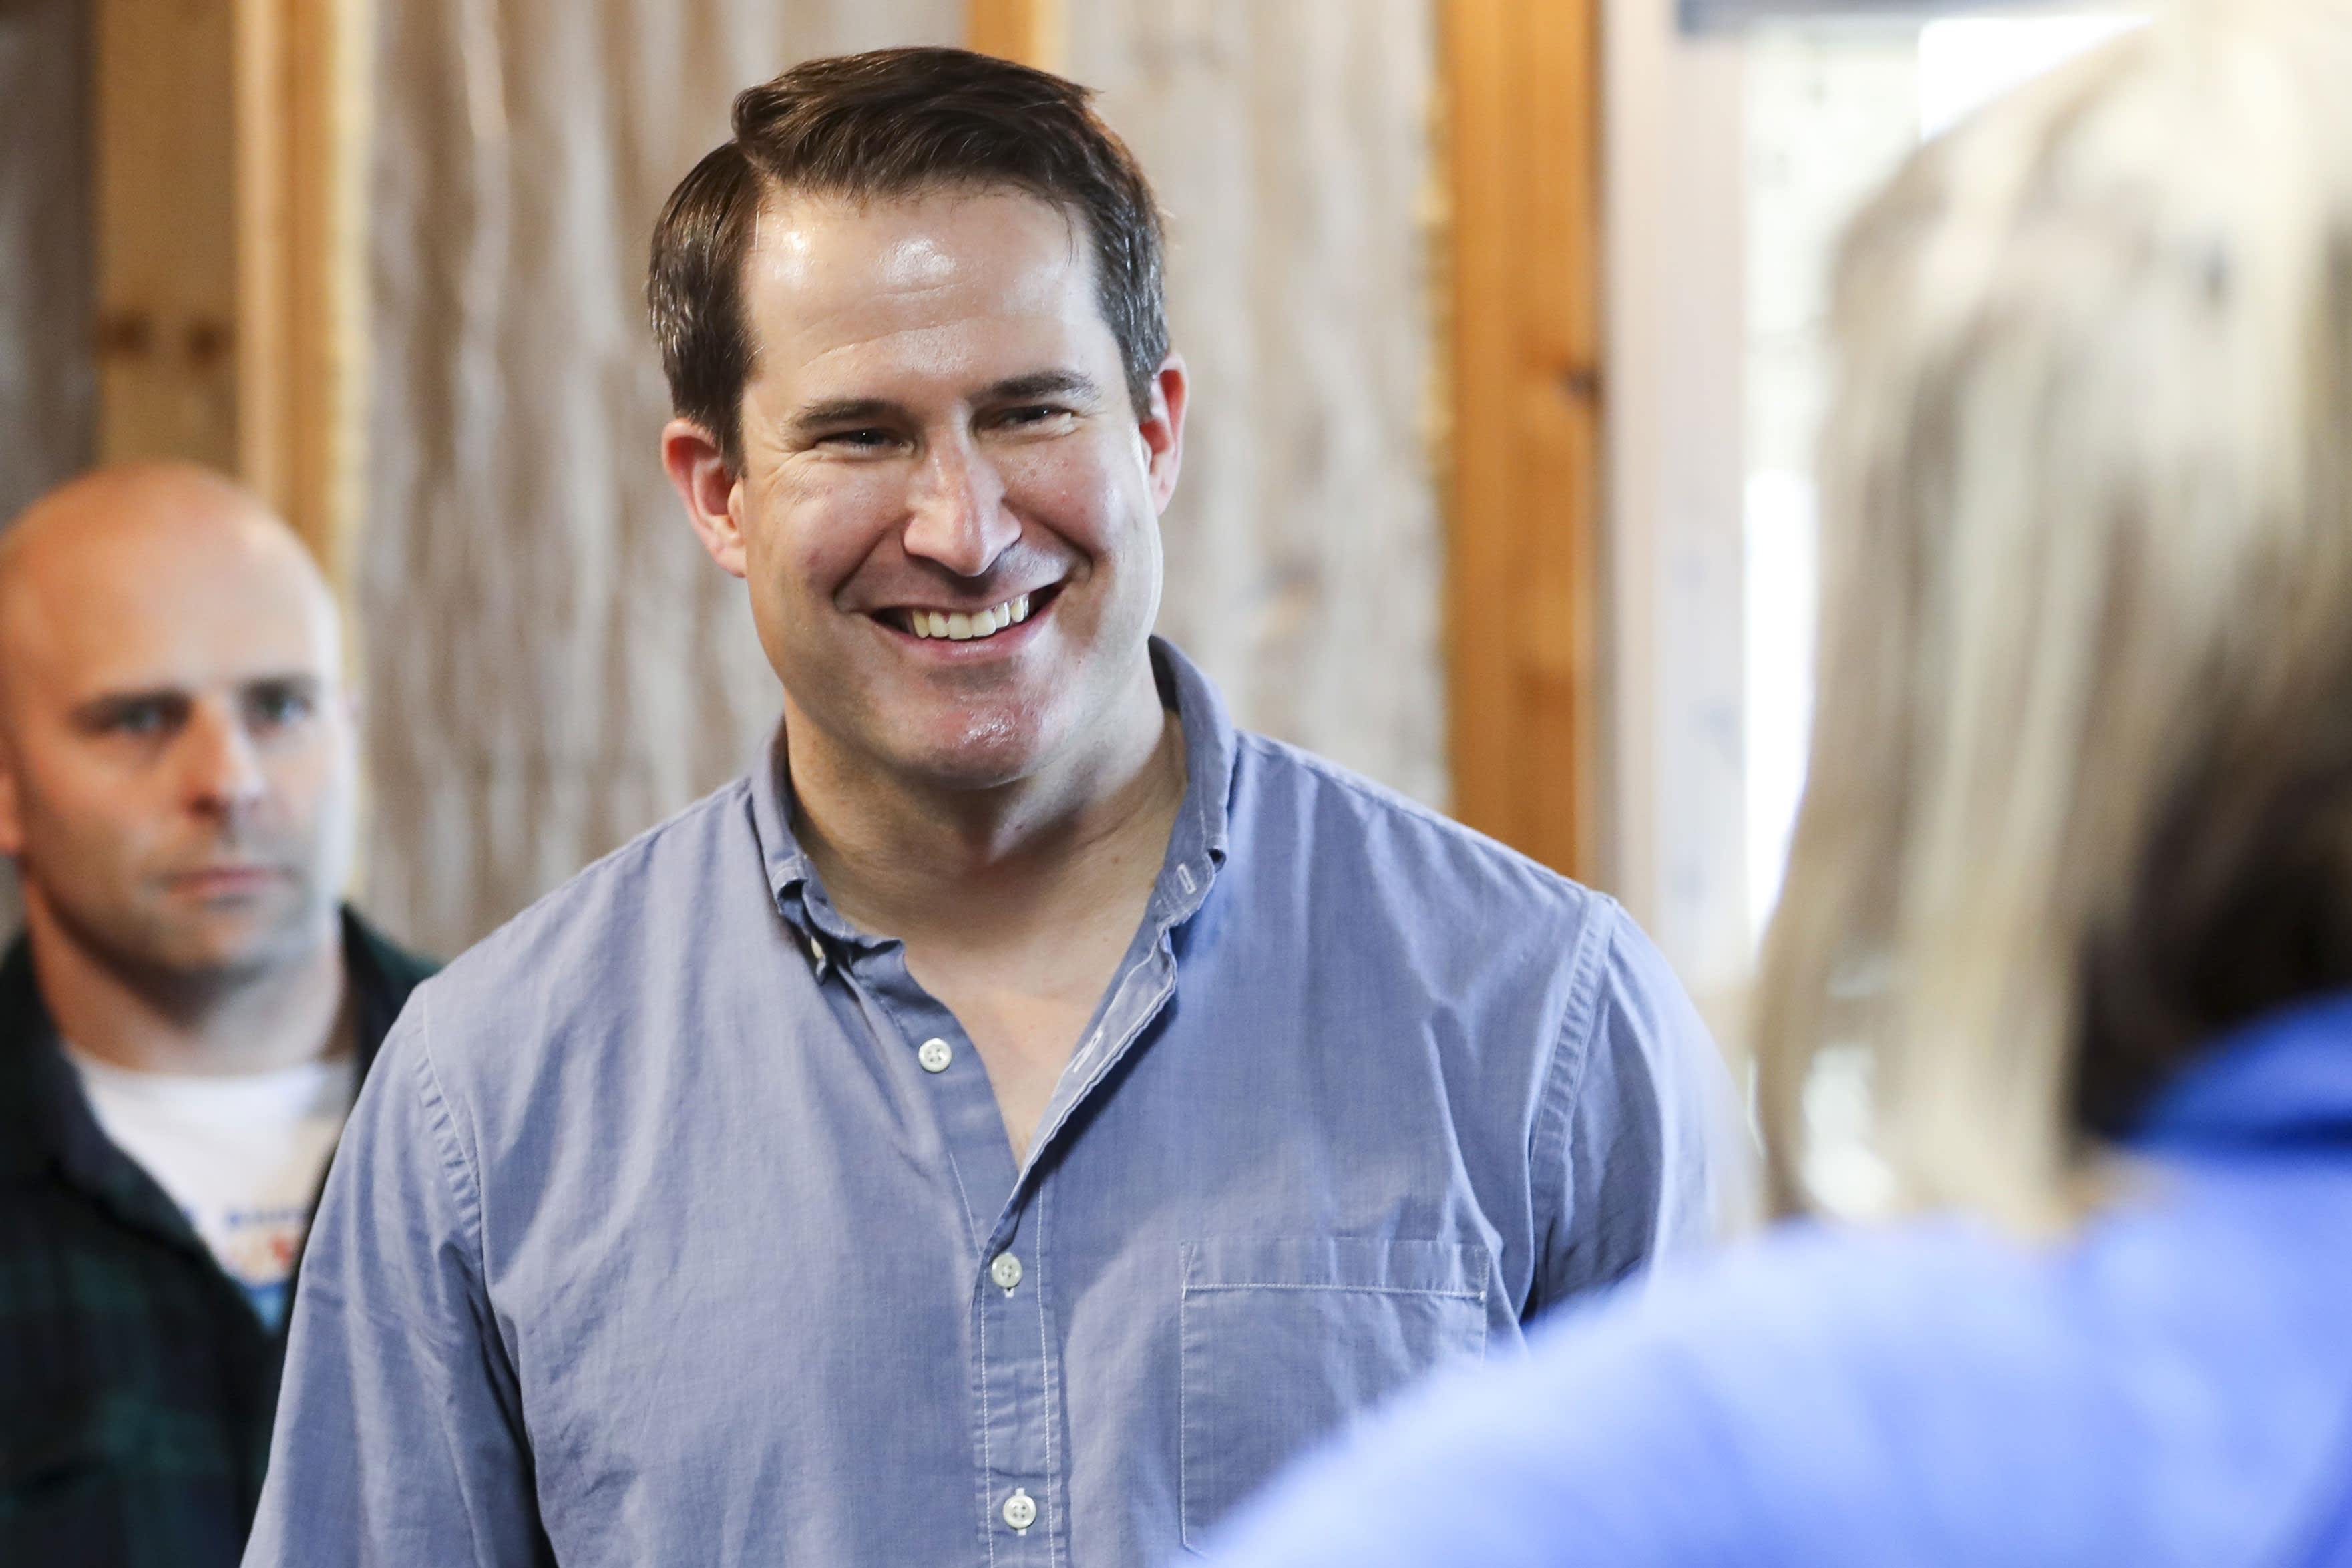 Democrat Seth Moulton drops out of the 2020 White House race